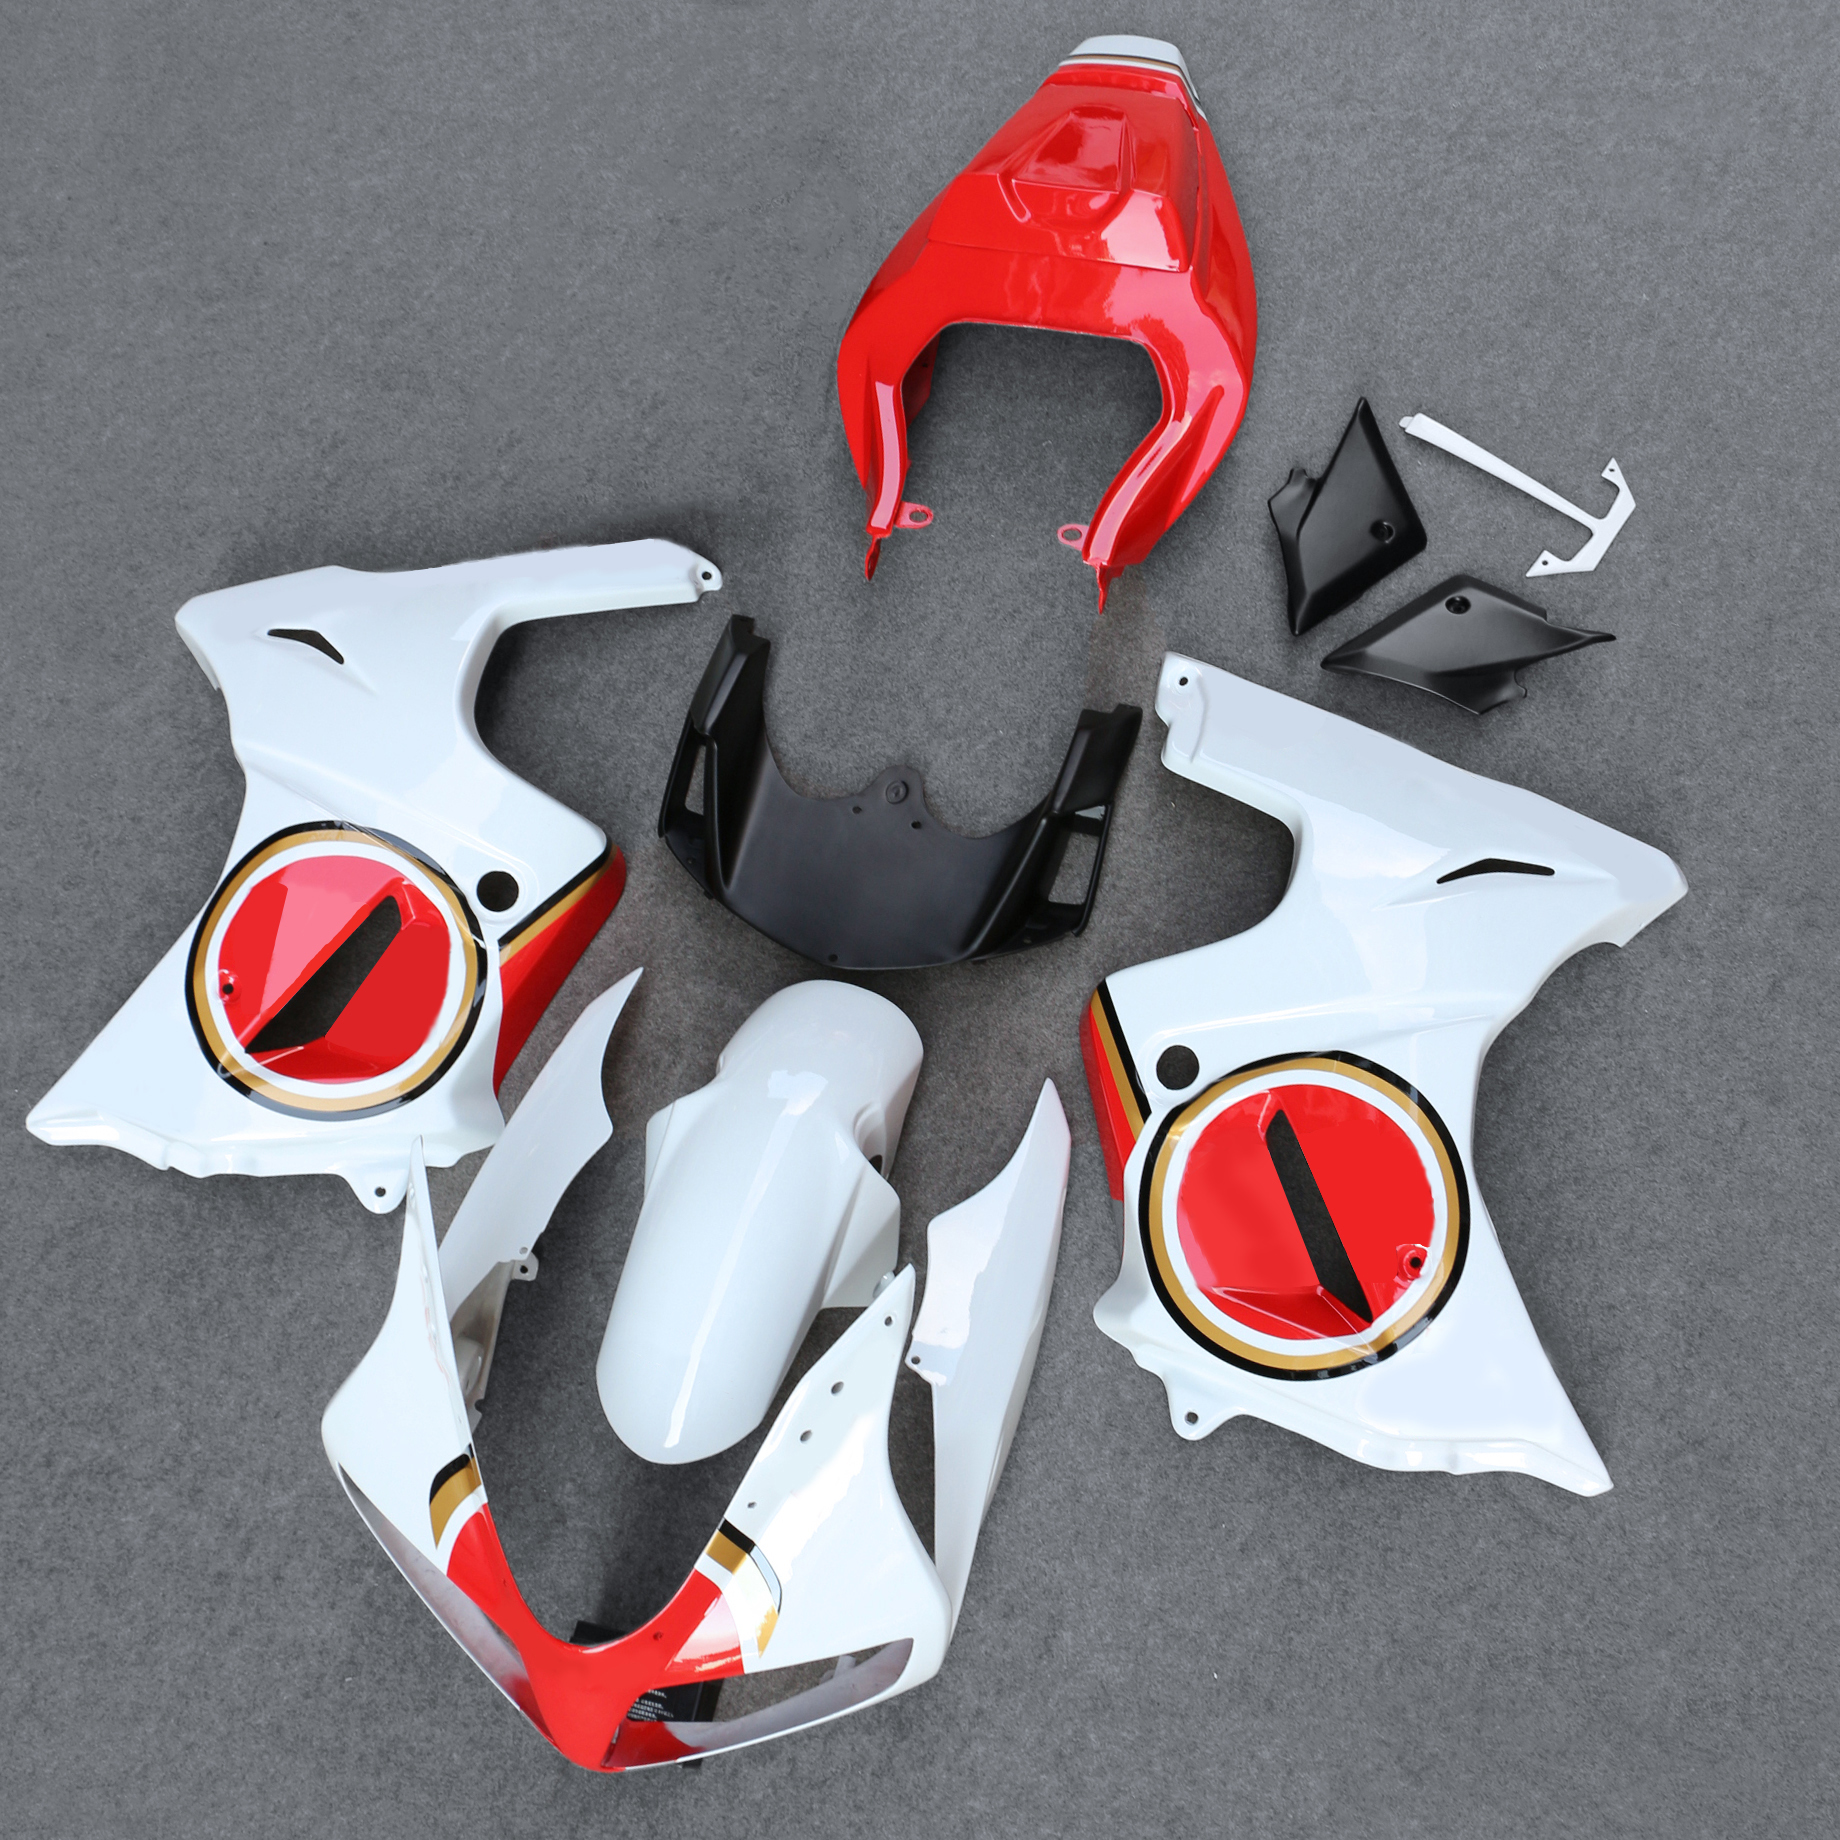 Fit For SV650s SV650 2003-2011 Fairing Body Kit Motorcycle Panel Set Shell Set